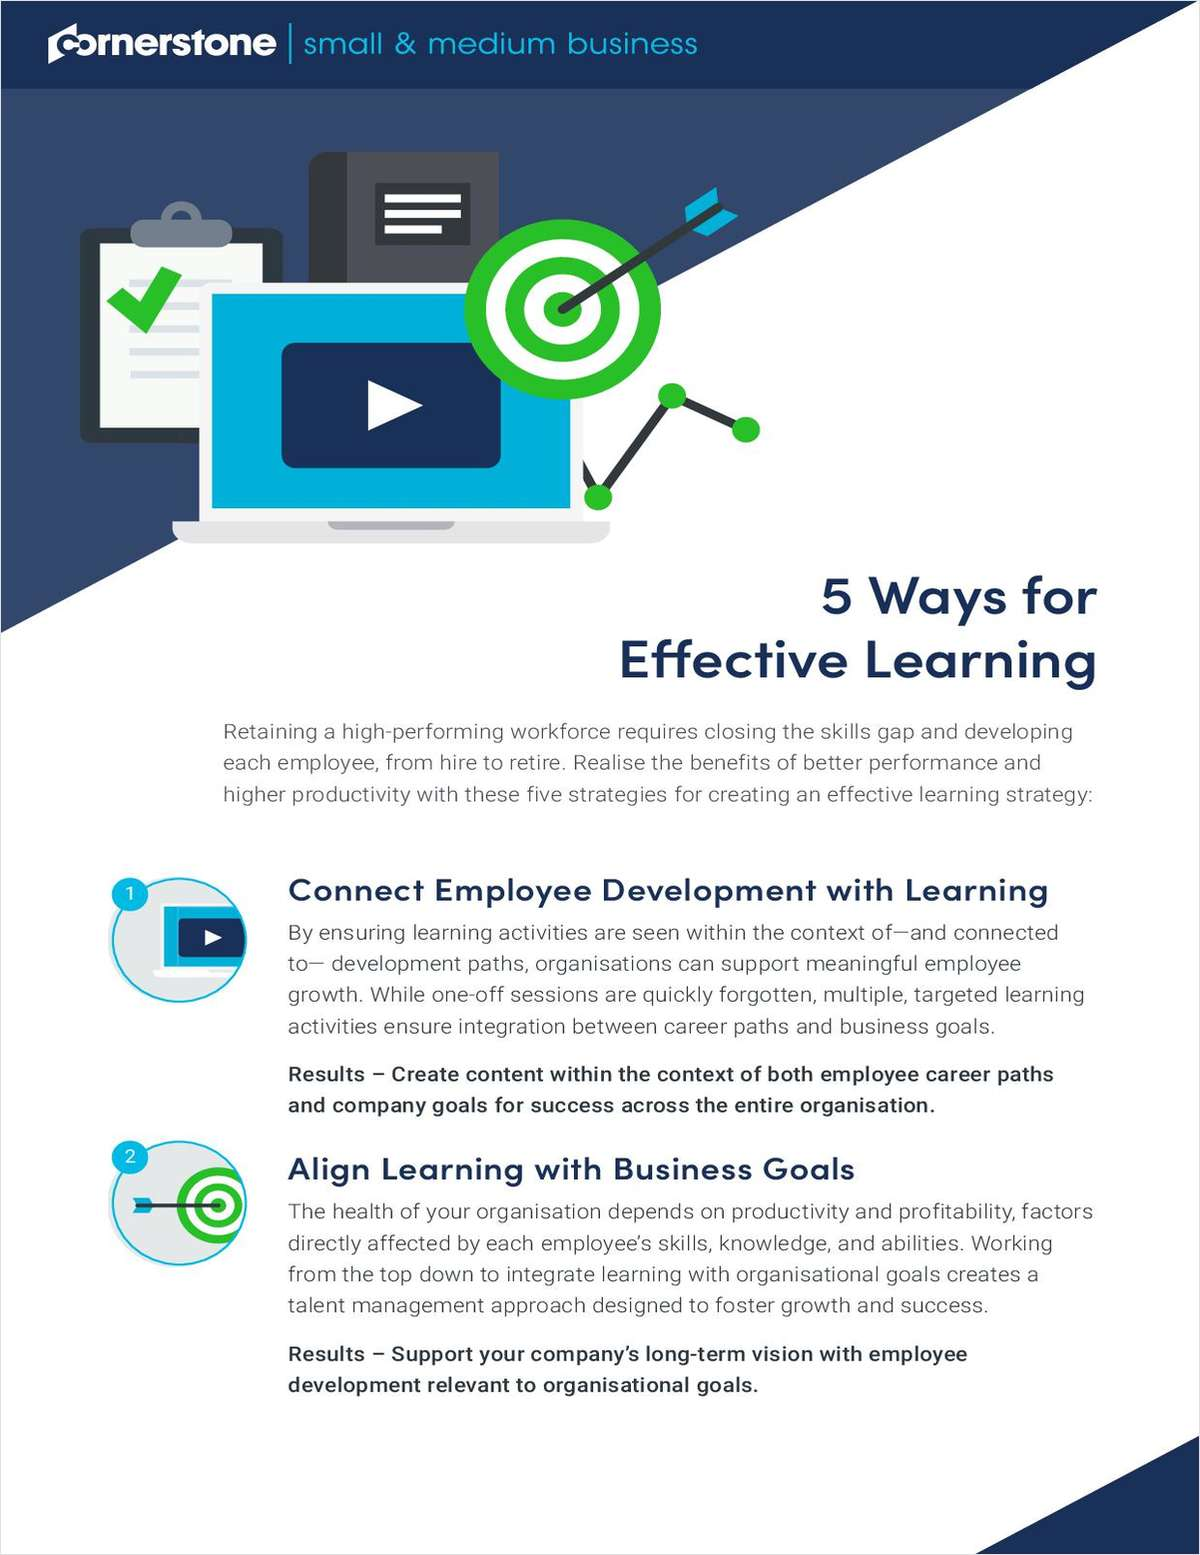 5 Ways for Effective Learning